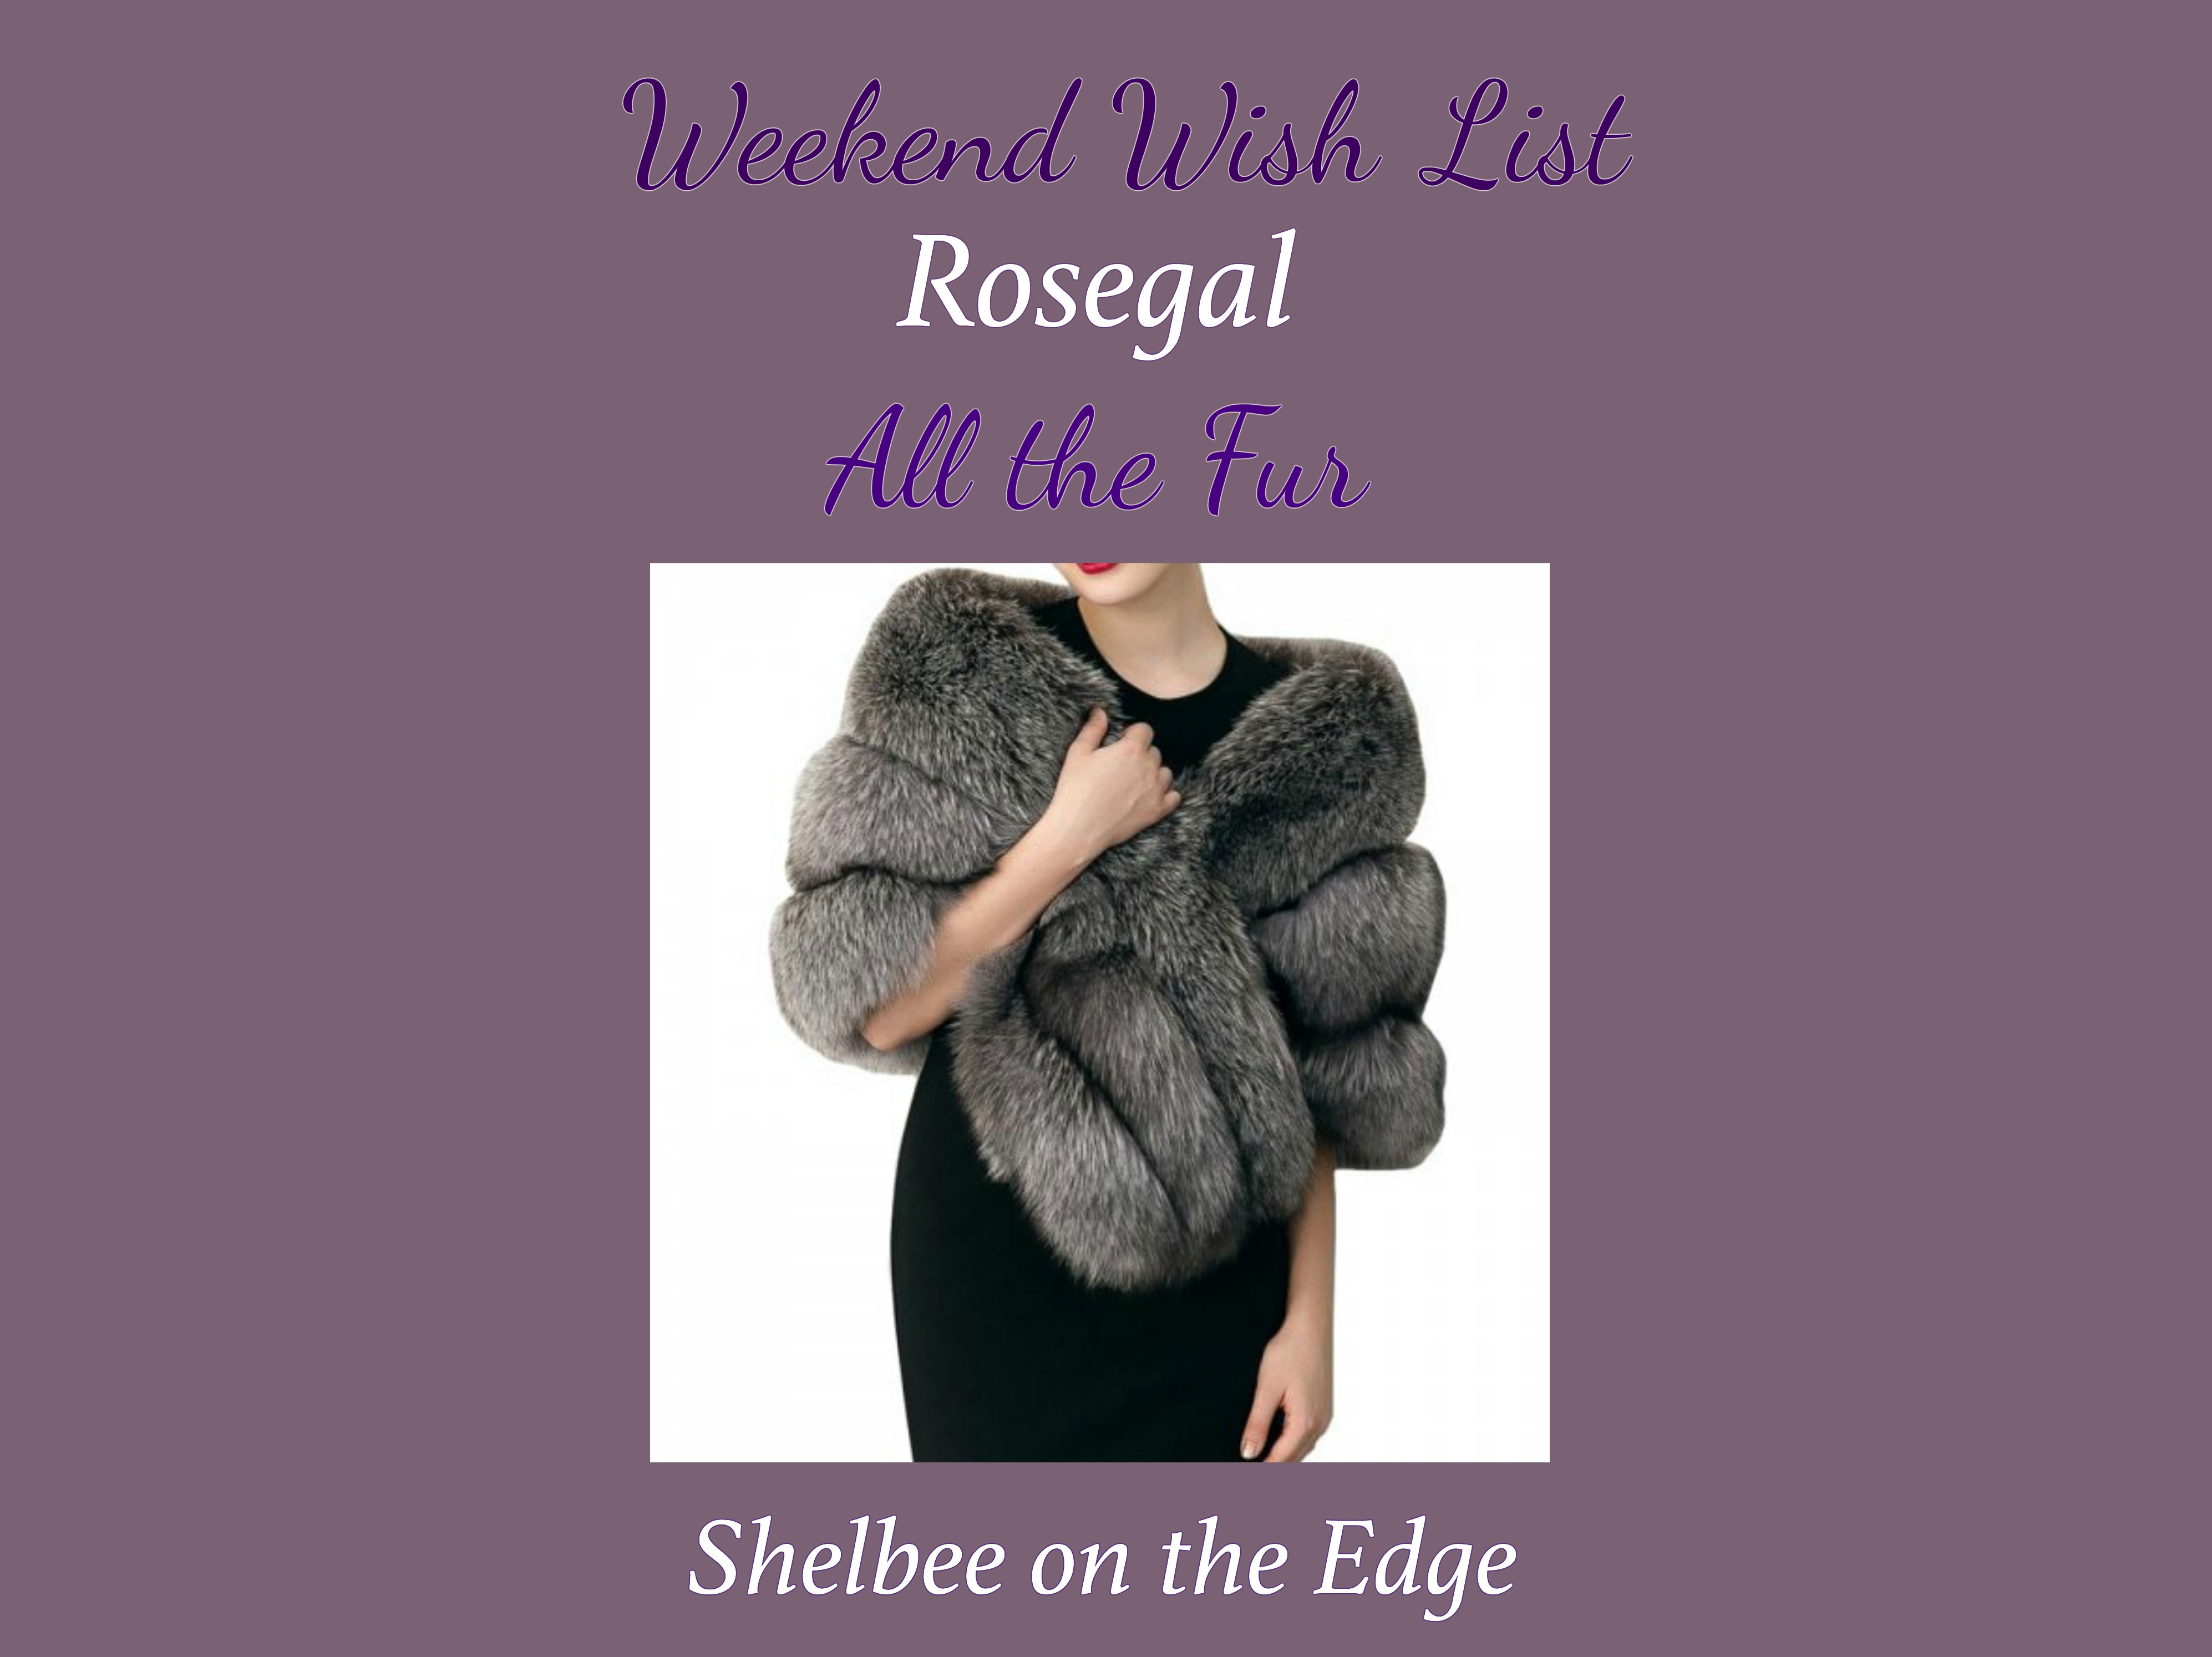 Weekend Wish List: All the Fur from Rosegal